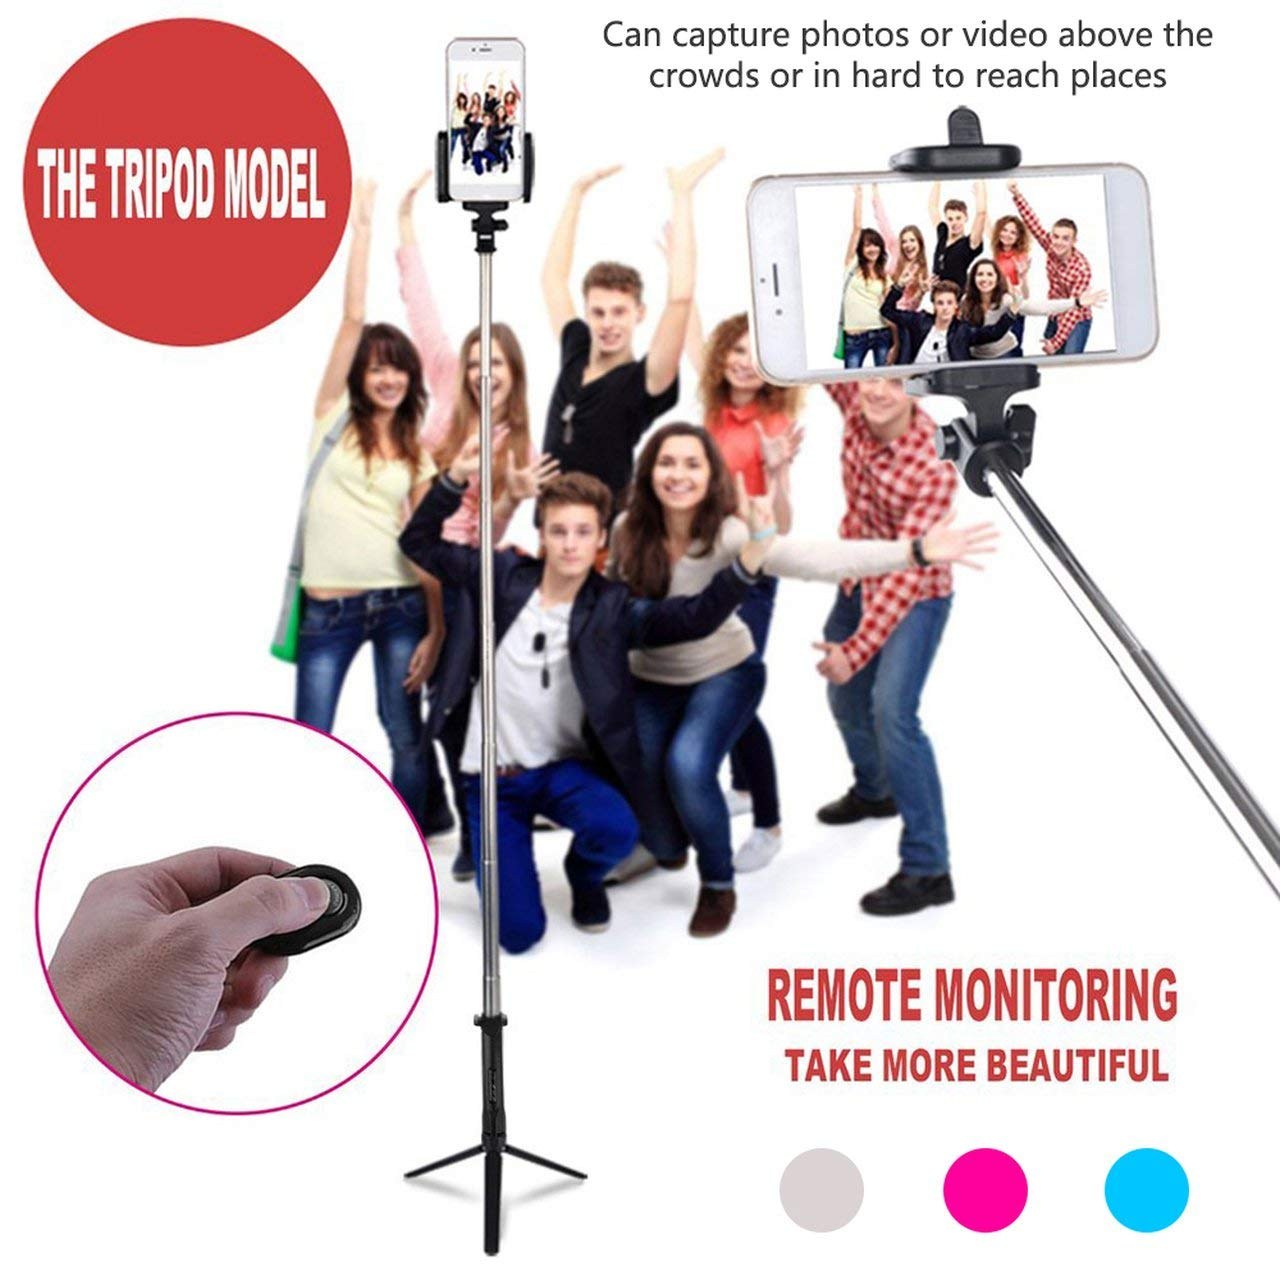 Stainless Steel 4 in 1 Wireless Remote Shutter+Handheld Cellphone Selfie Stick Monopod+Tripod+Holder for iOS Android Smartphone